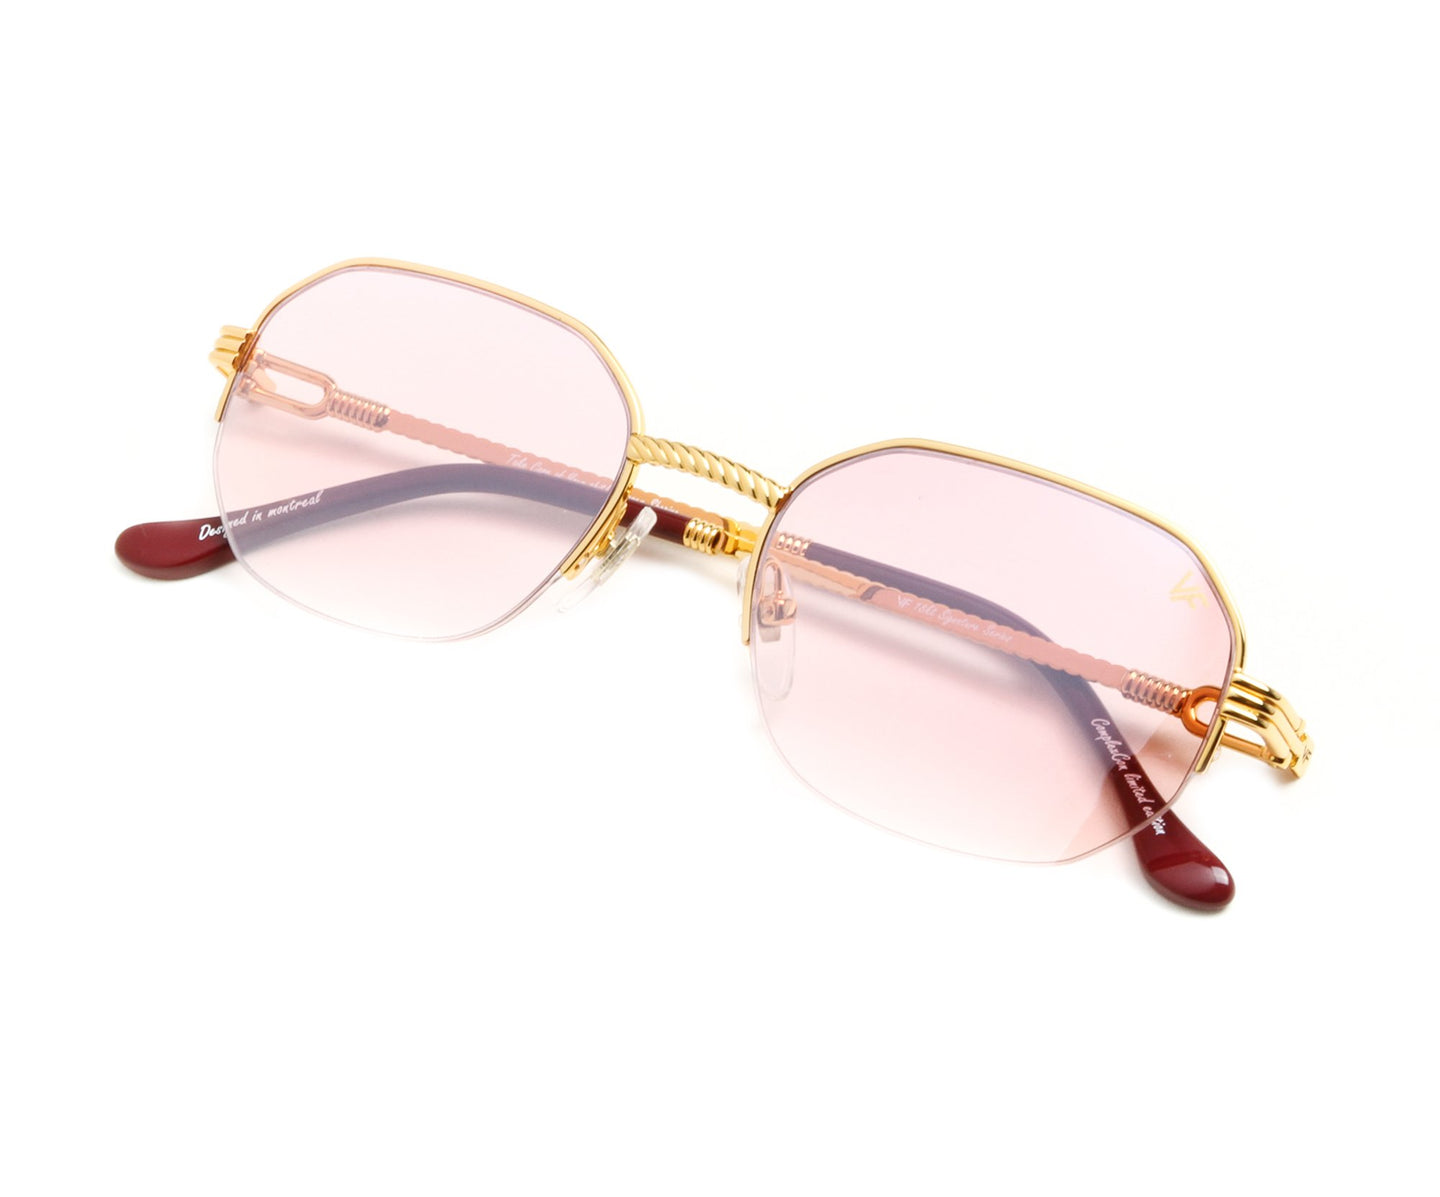 VF Hustler Half Rim 18KT Gold (Nickel Pink) Thumb, VF by Vintage Frames , glasses frames, eyeglasses online, eyeglass frames, mens glasses, womens glasses, buy glasses online, designer eyeglasses, vintage sunglasses, retro sunglasses, vintage glasses, sunglass, eyeglass, glasses, lens, vintage frames company, vf